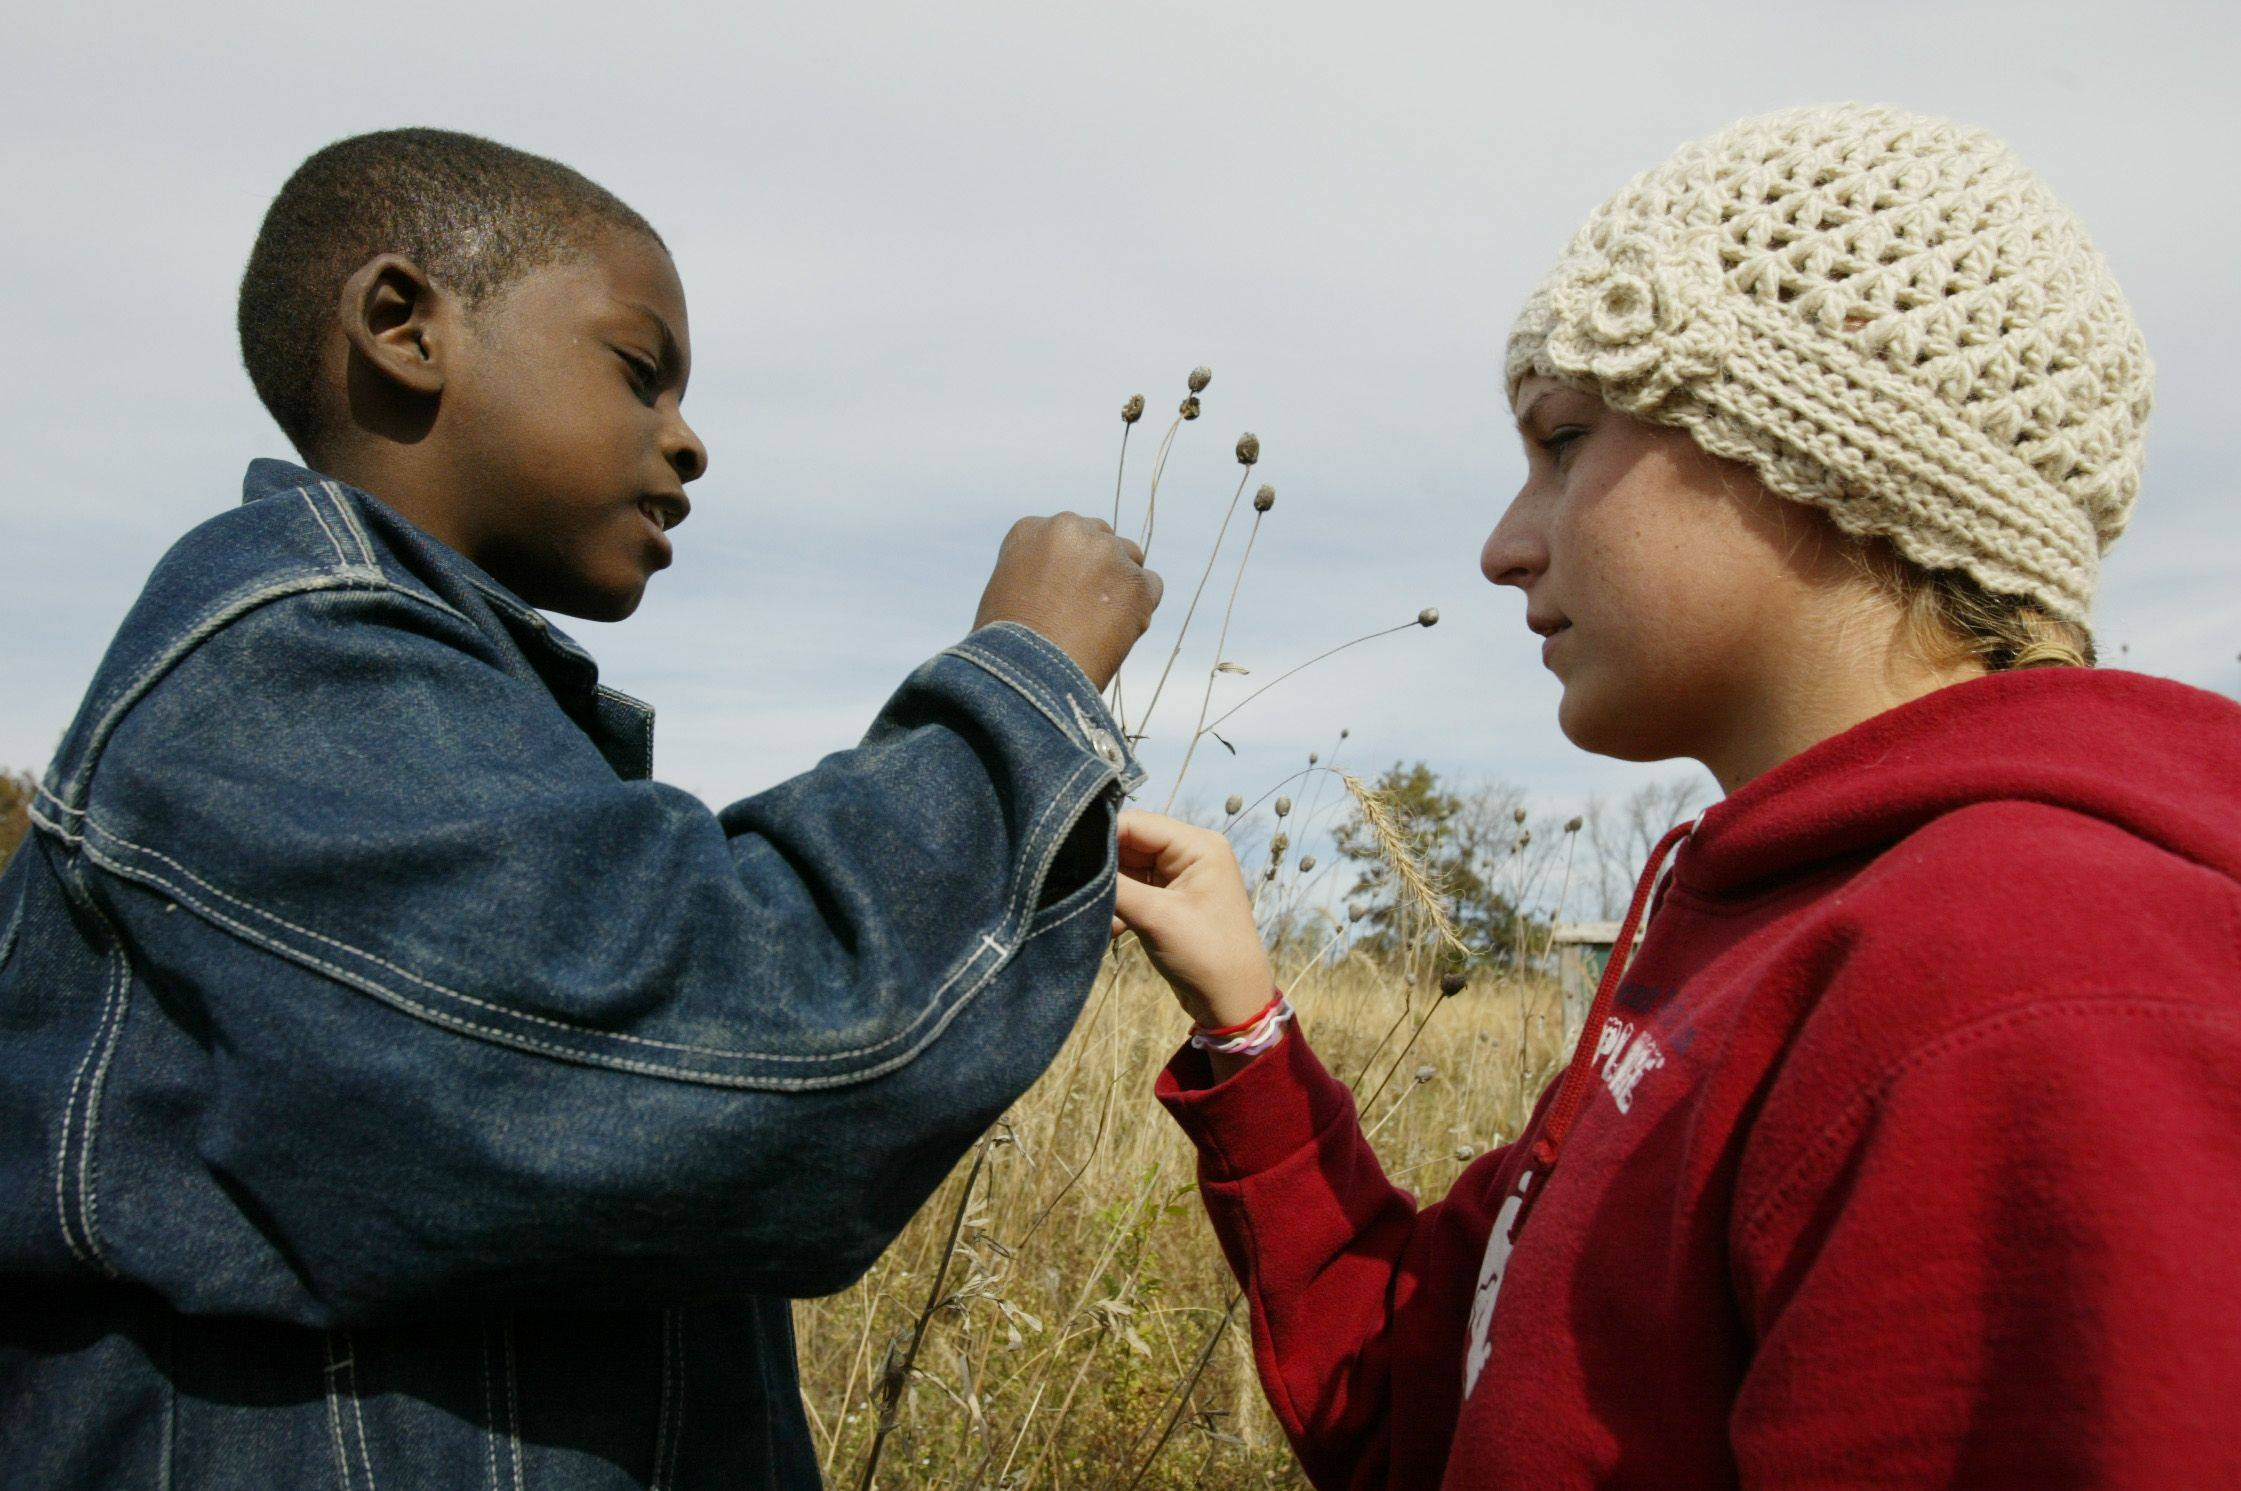 Dundee-Crown senior Claira Himmel shows Perry Elementary third-grader Keywan Riggins how to collect coneflower seeds Tuesday at Snuffy's Prairie in Carpentersville.